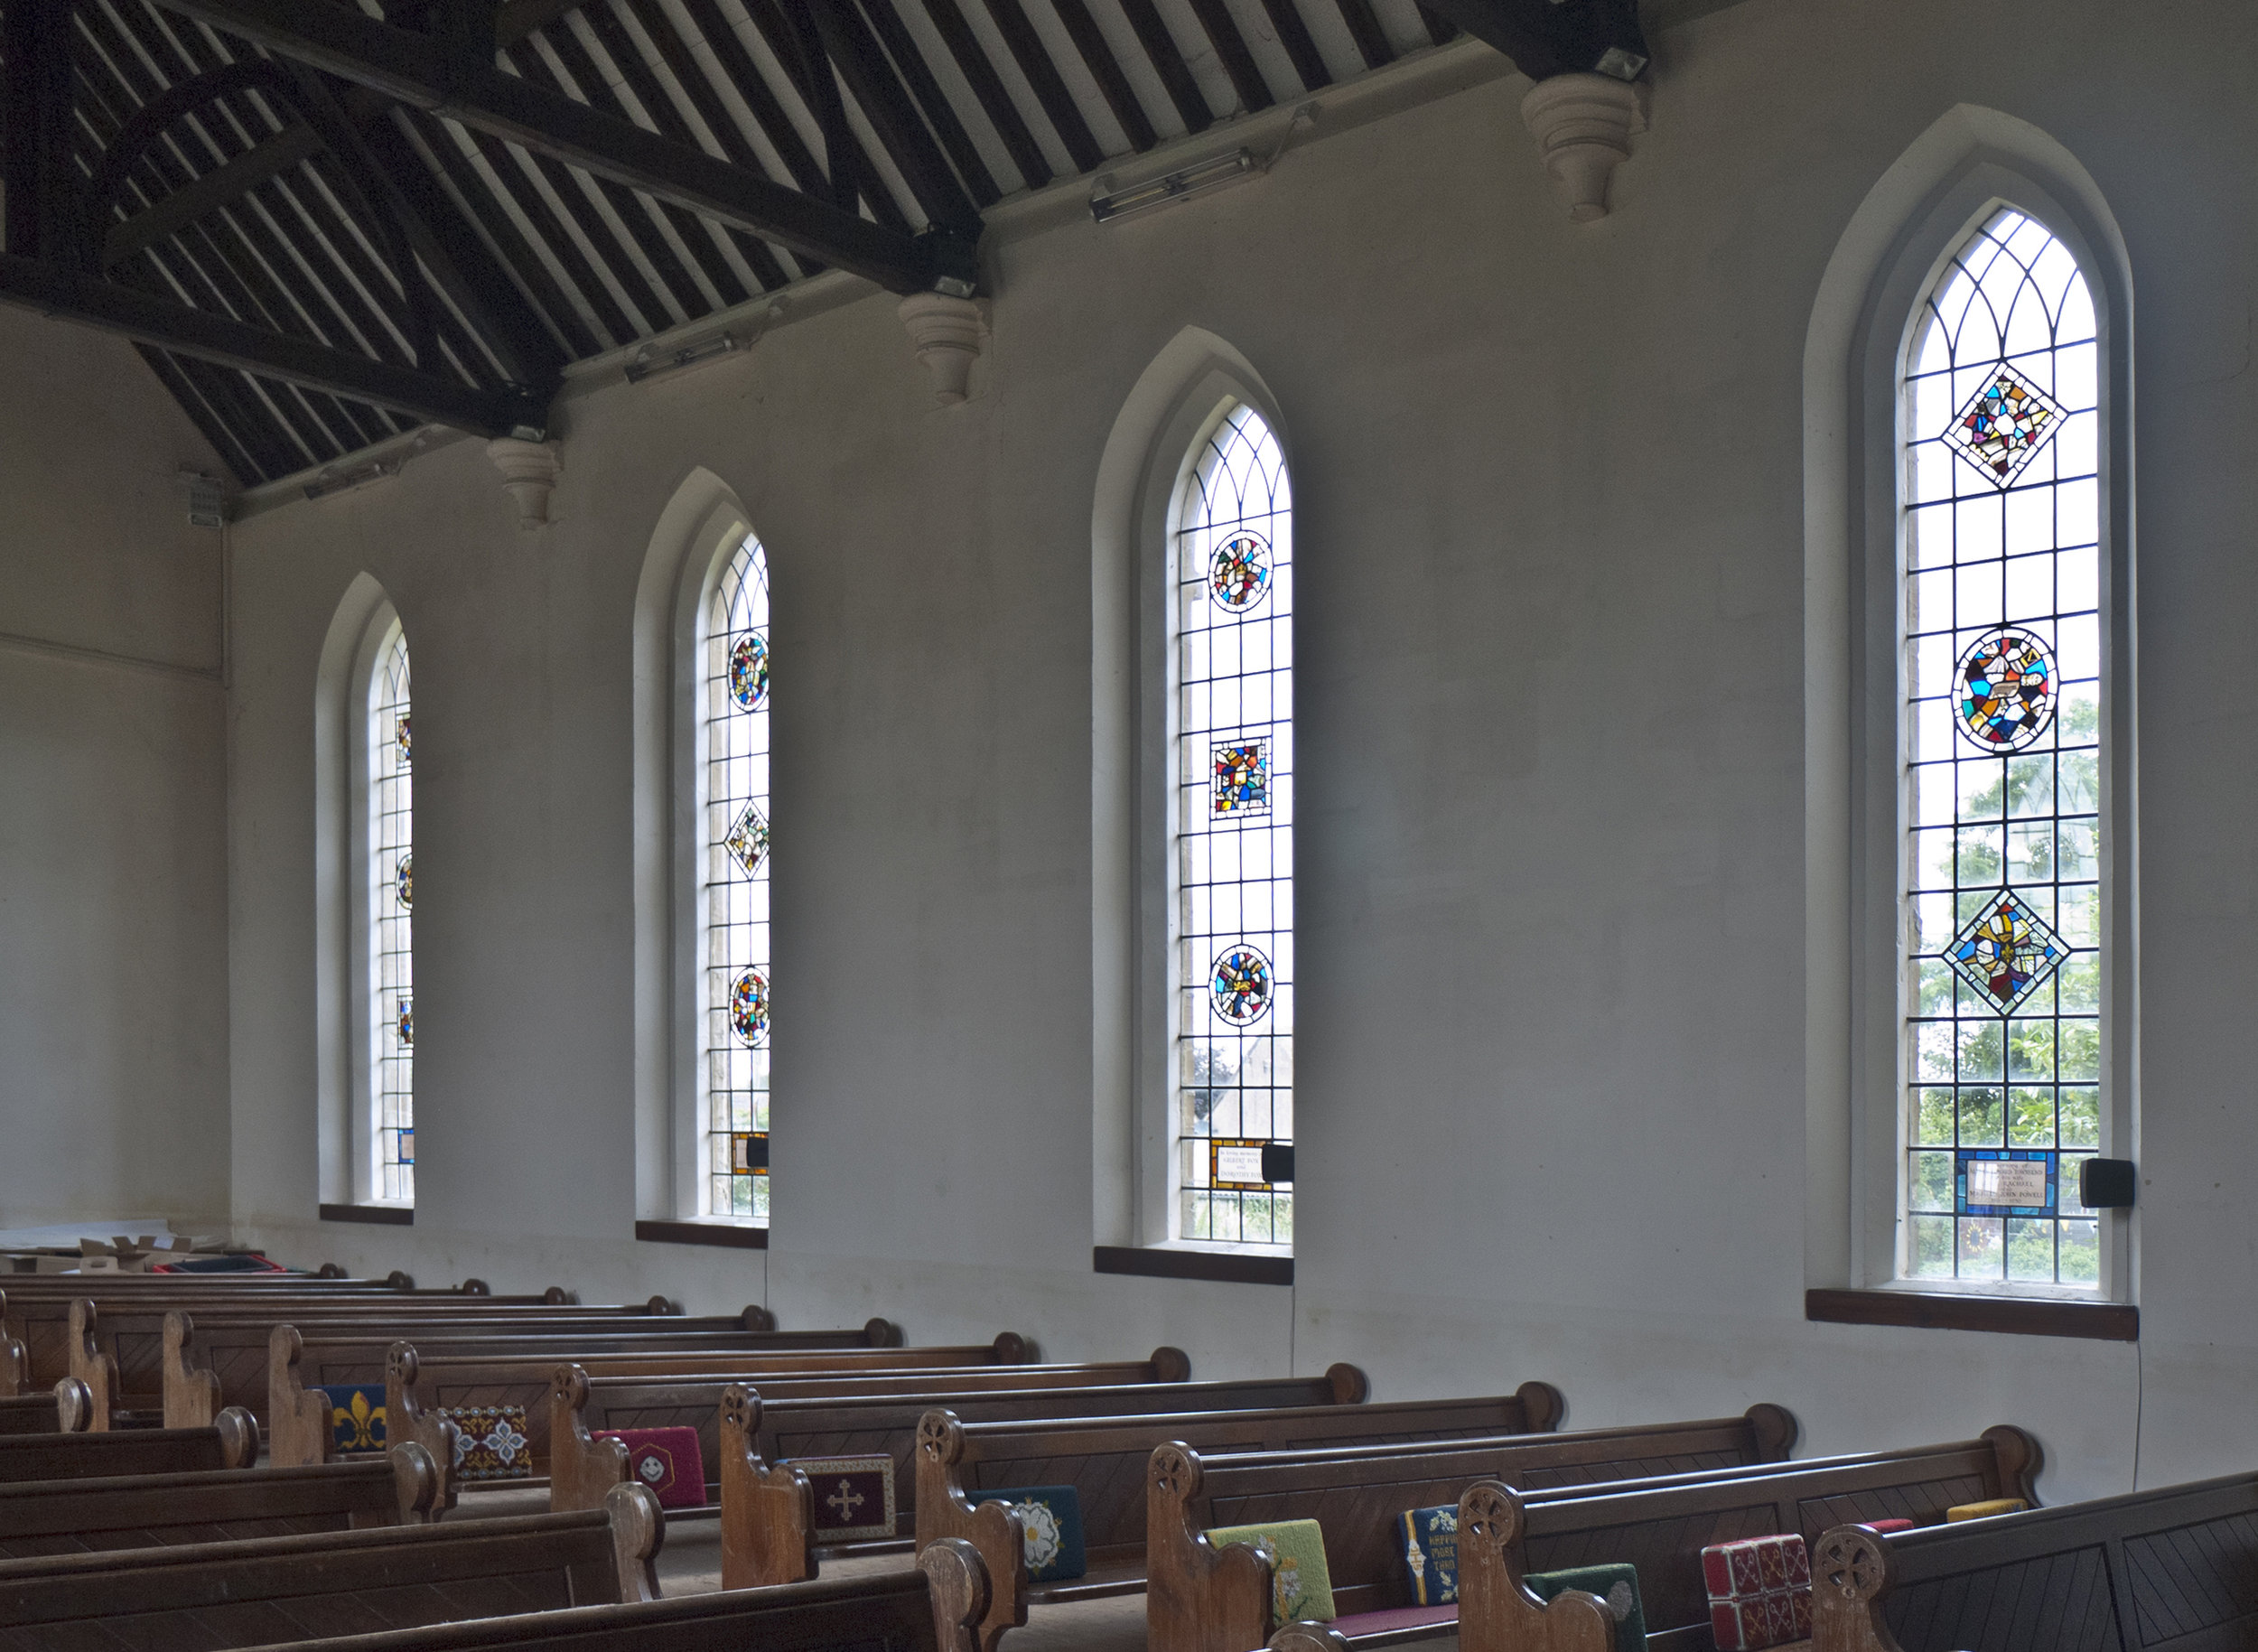 Inside the nave, plain apart from glass medallions, kneelers & pews - all very attractive.